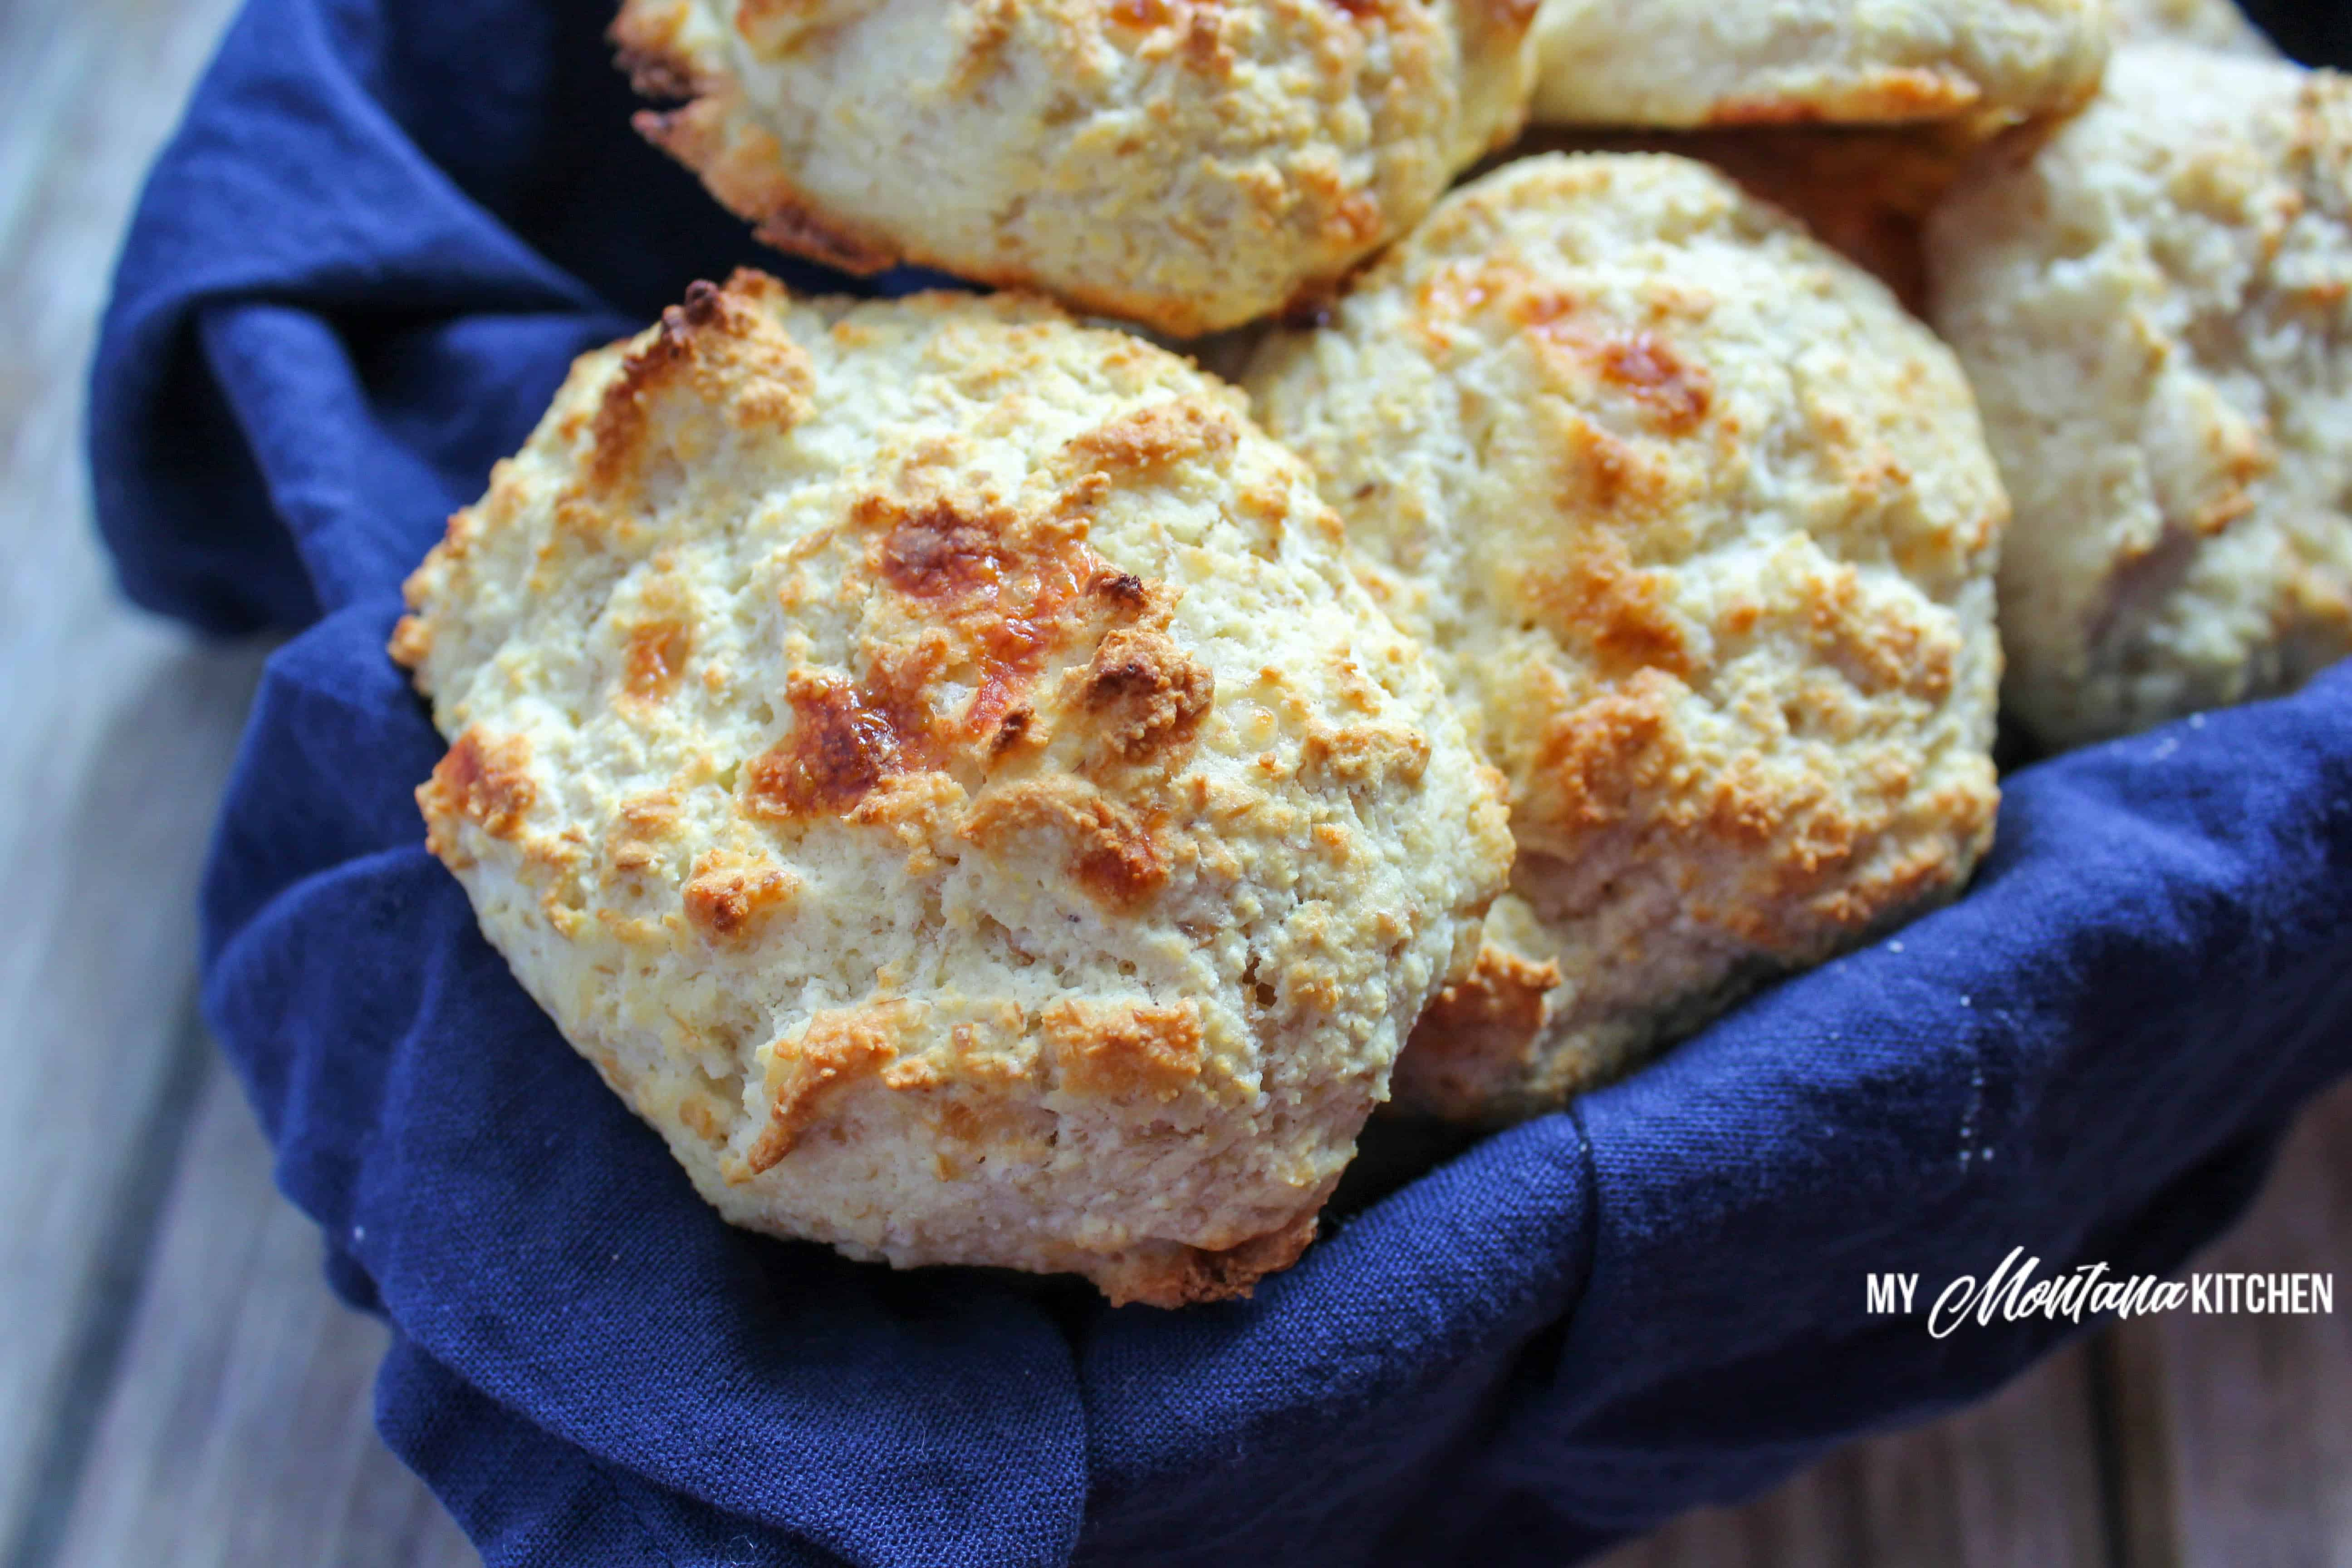 Low Carb Biscuits (THM-S, Gluten Free, Keto) #trimhealthymama #thm #thm-s #biscuits #lowcarb #keto #lowcarbbiscuit #mymontanakitchen